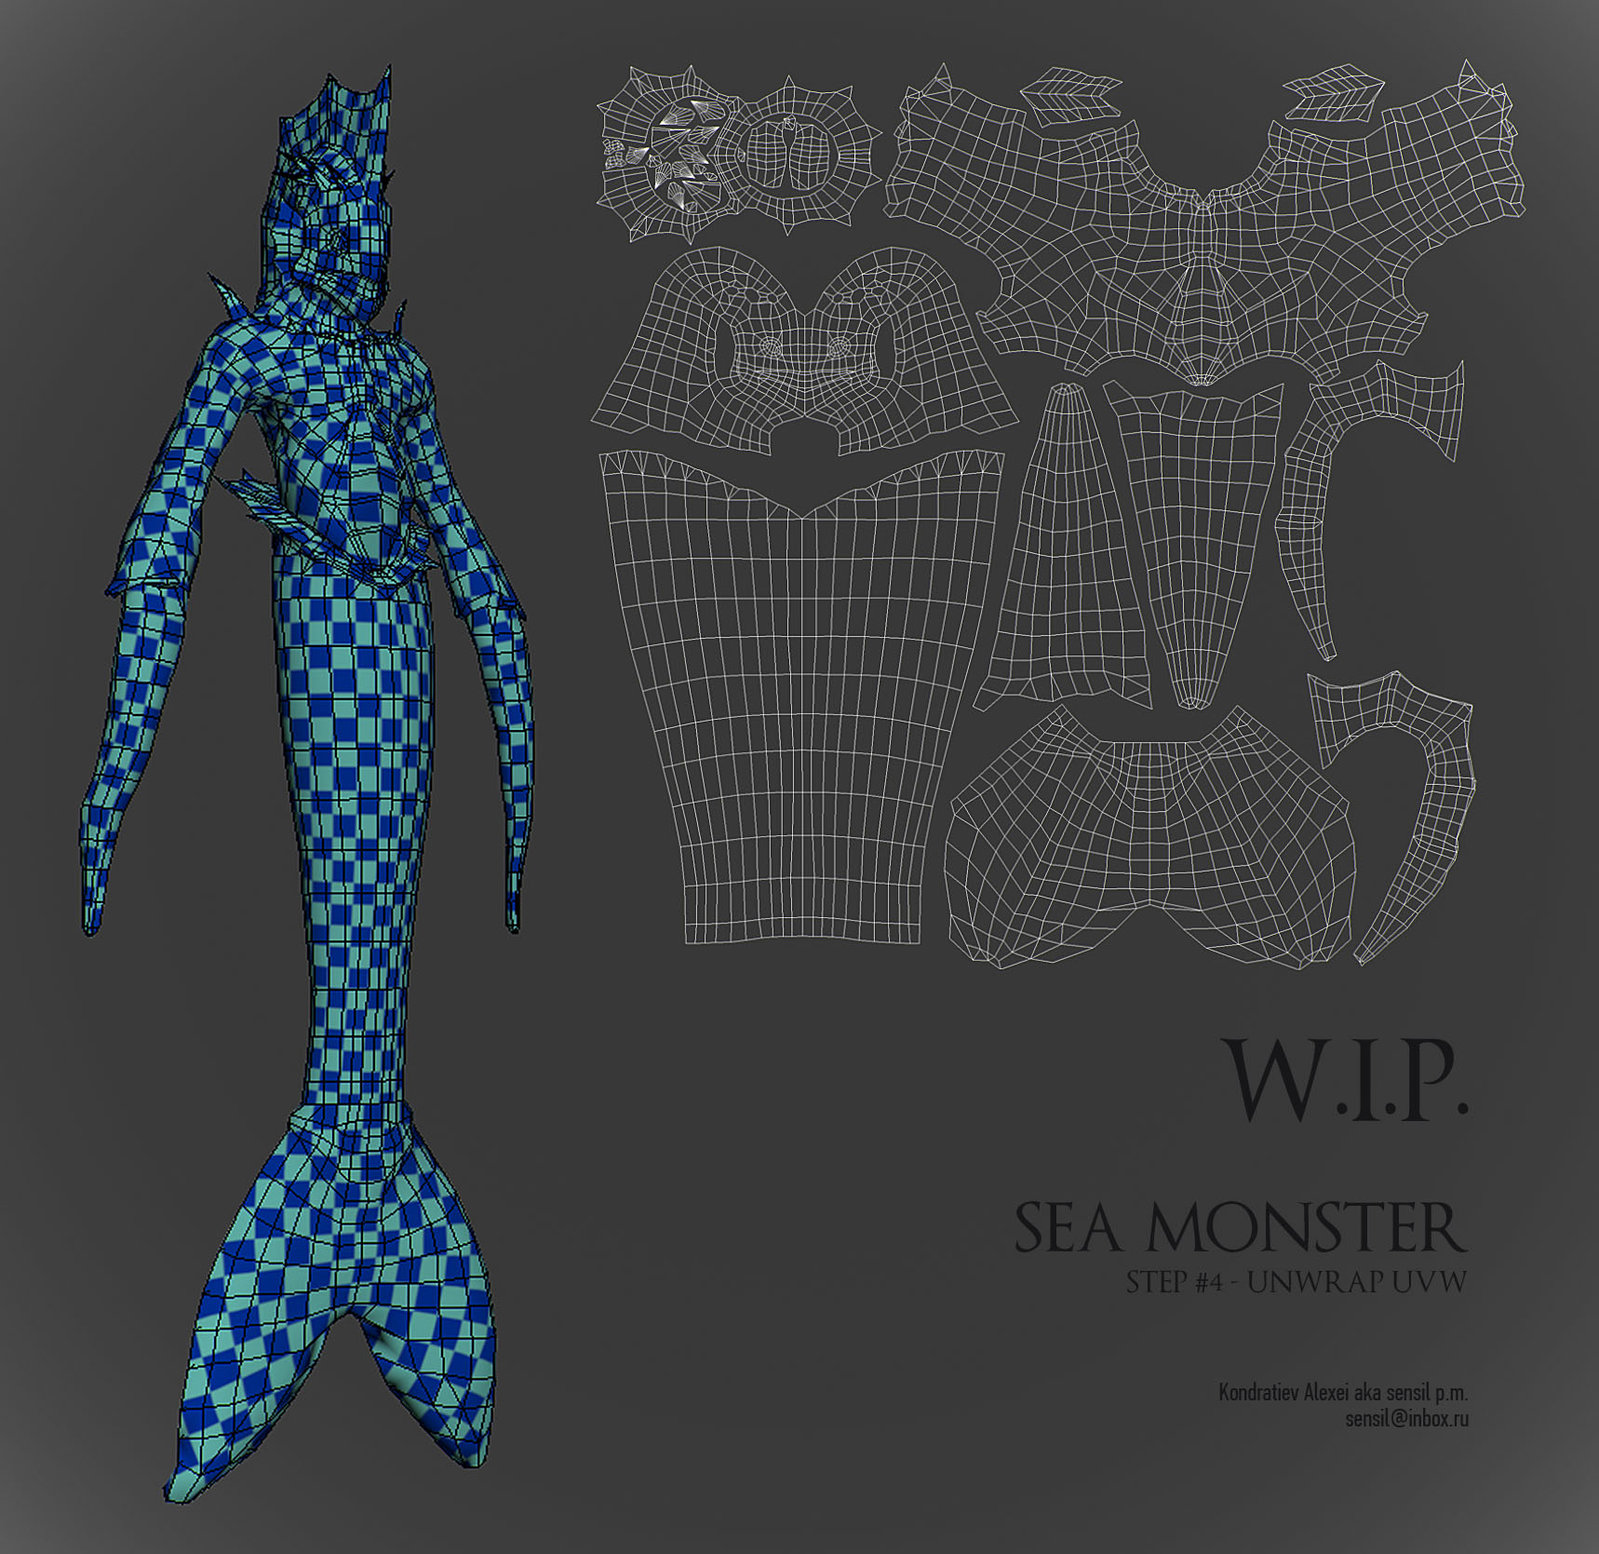 sea monster_concept12.jpg